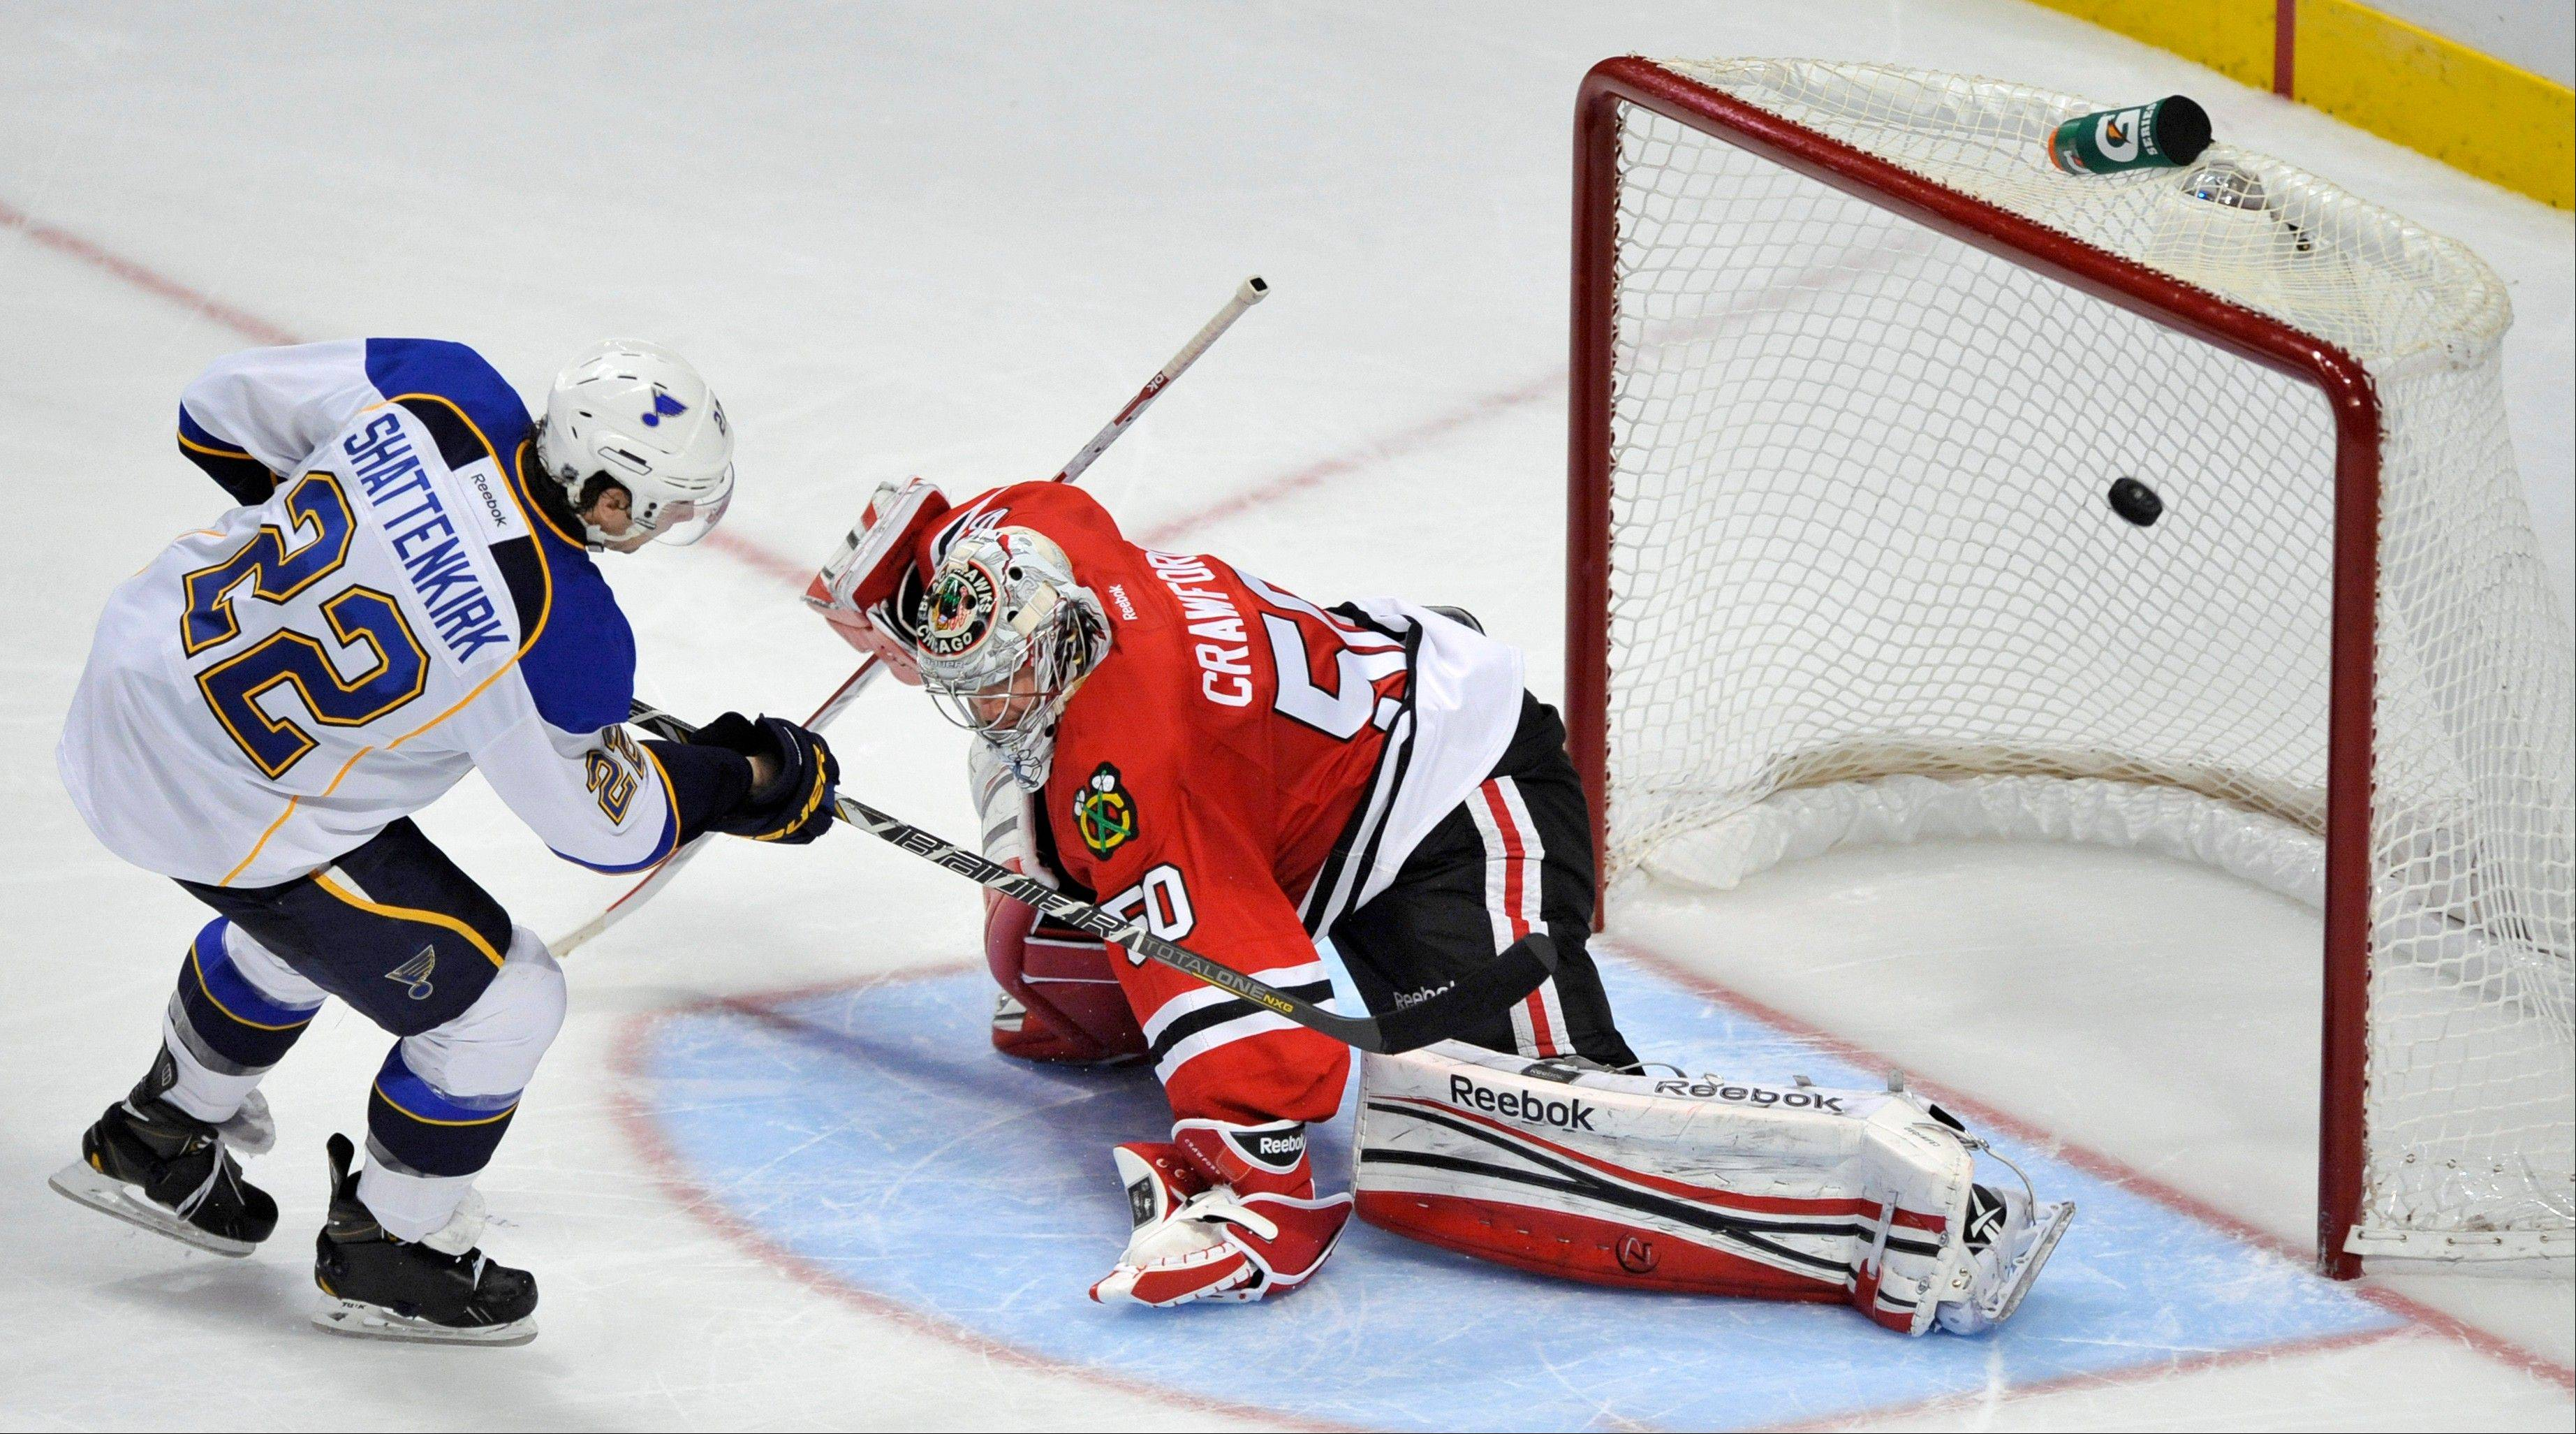 St. Louis Blues' Kevin Shattenkirk (22), scores against Chicago Blackhawks goalie Corey Crawford during a shootout in an NHL hockey game in Chicago, Thursday, April 4, 2013. St. Louis won 4-3.